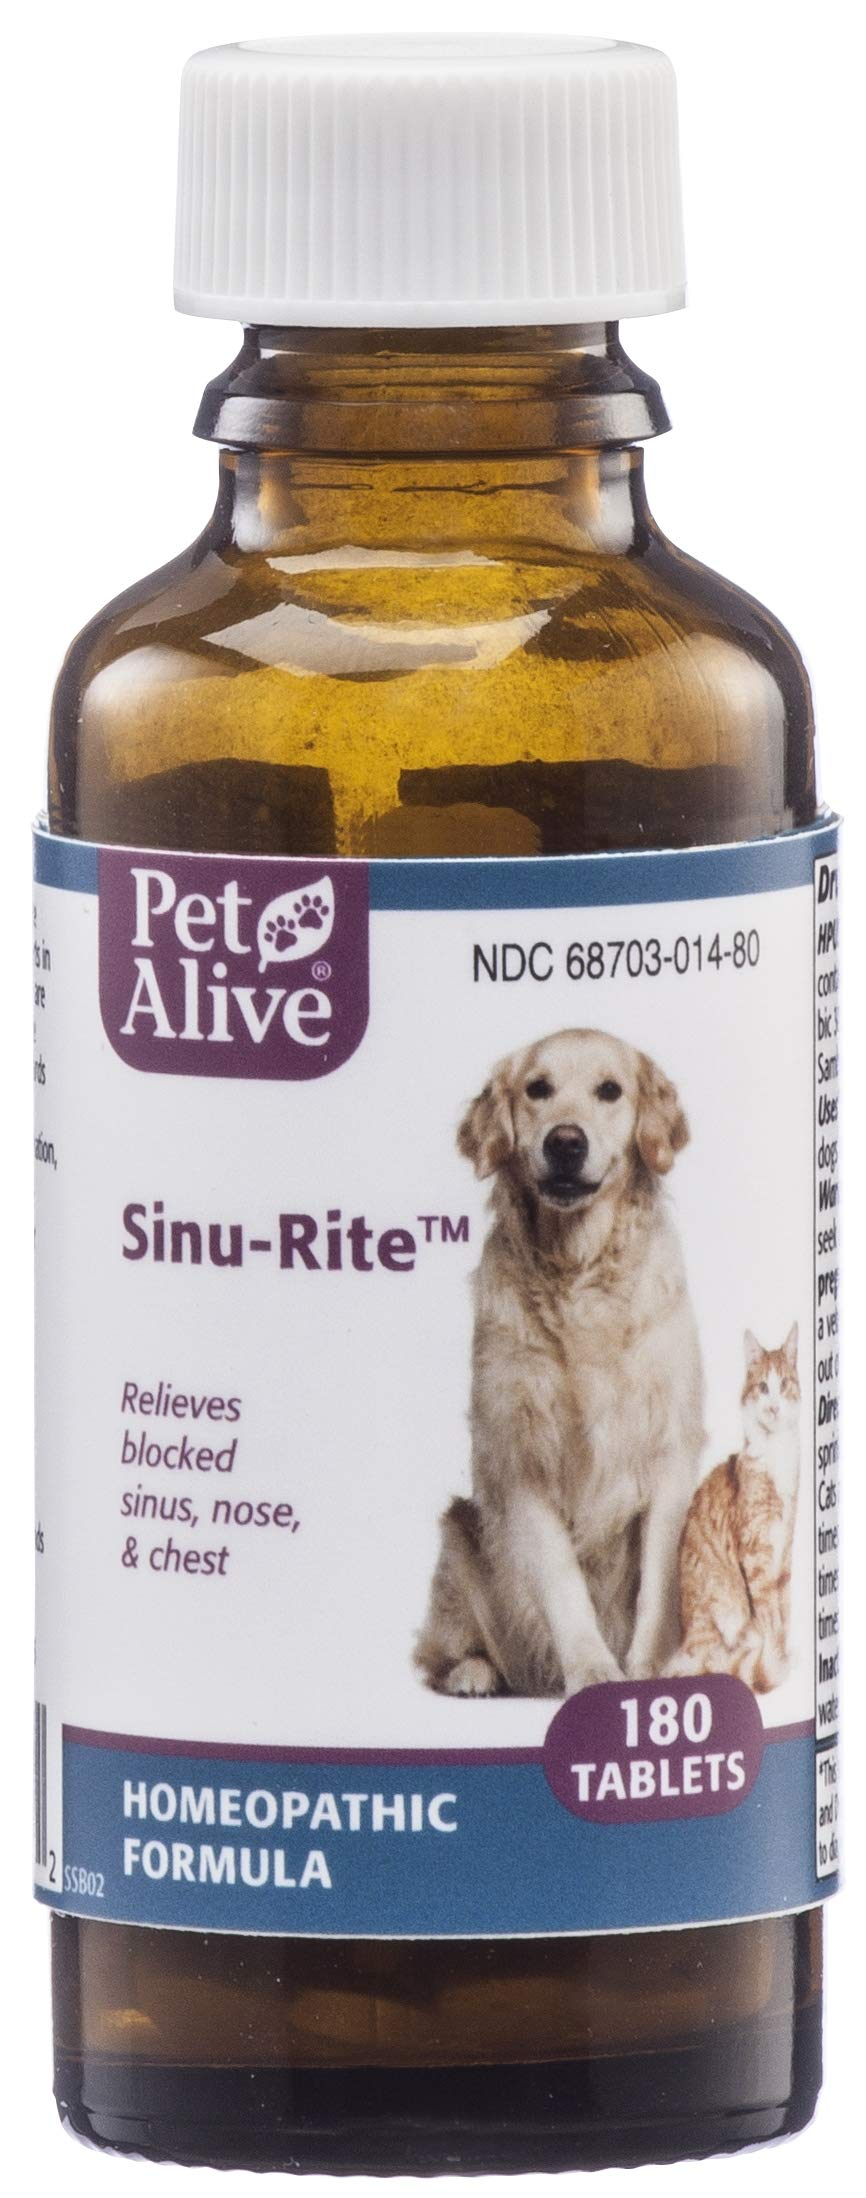 PetAlive Sinu-Rite - Natural Homeopathic Formula for Allergy-Related Congestion and Acute Sinusitis in Dogs and Cats - Relieves Blocked Sinus, Nose and Chest in Pets - 180 Tablets